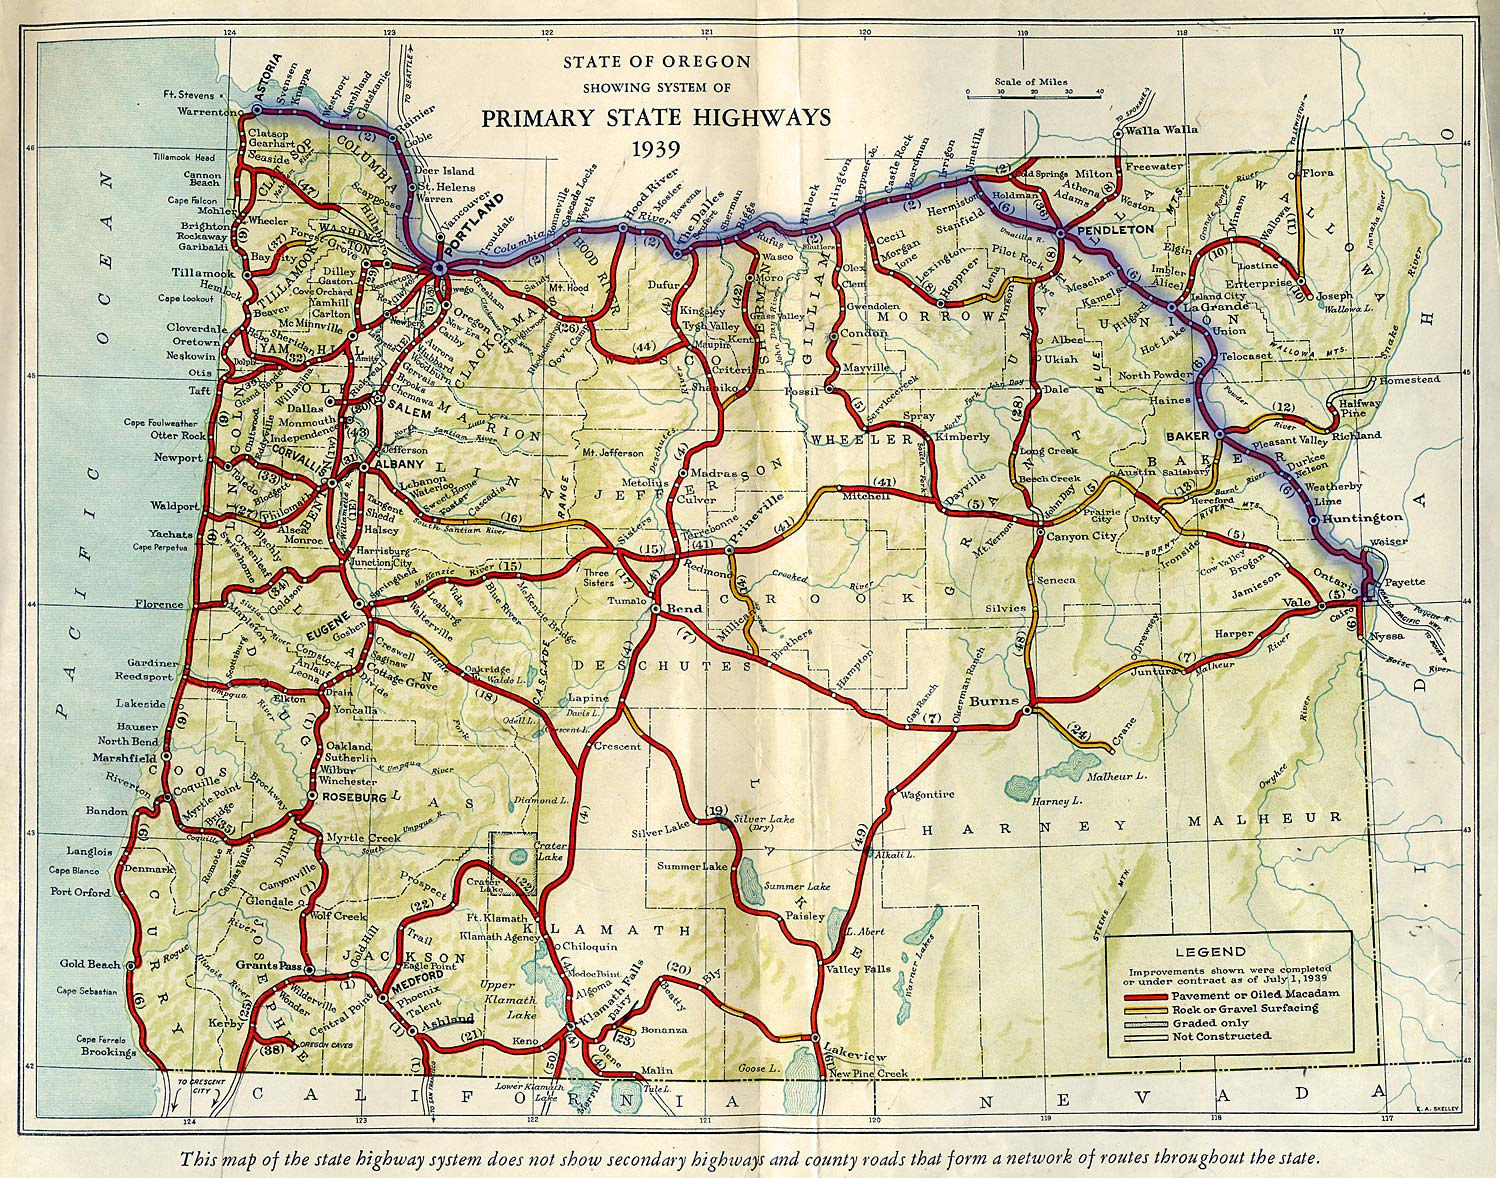 Oregon Secretary of State: Route Map